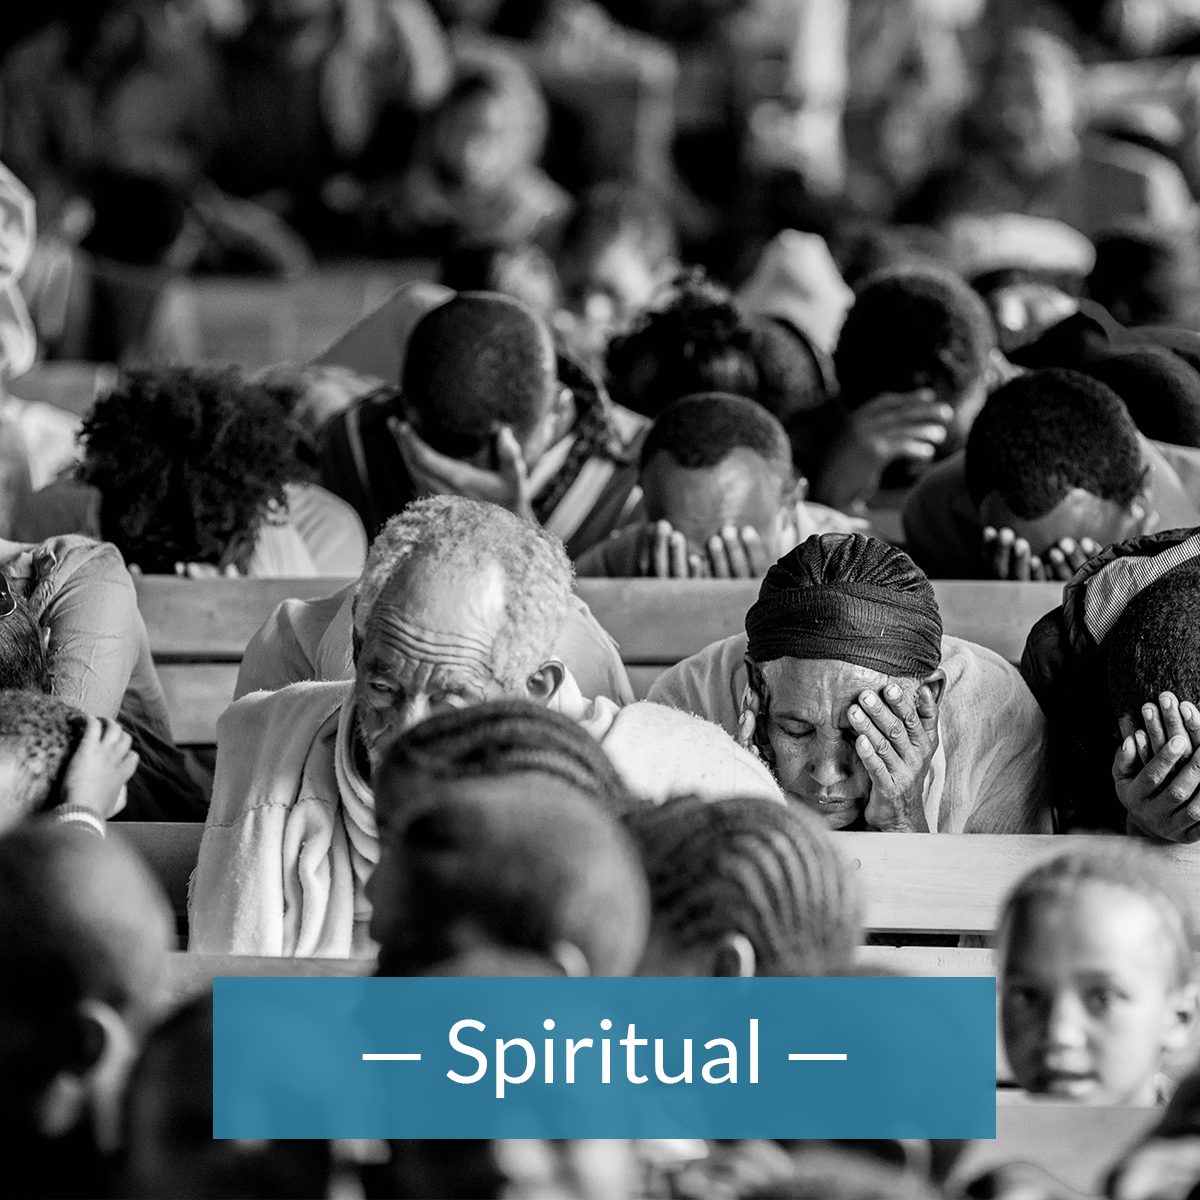 Redemptive lift effects the spiritual wellbeing of individuals in the community.